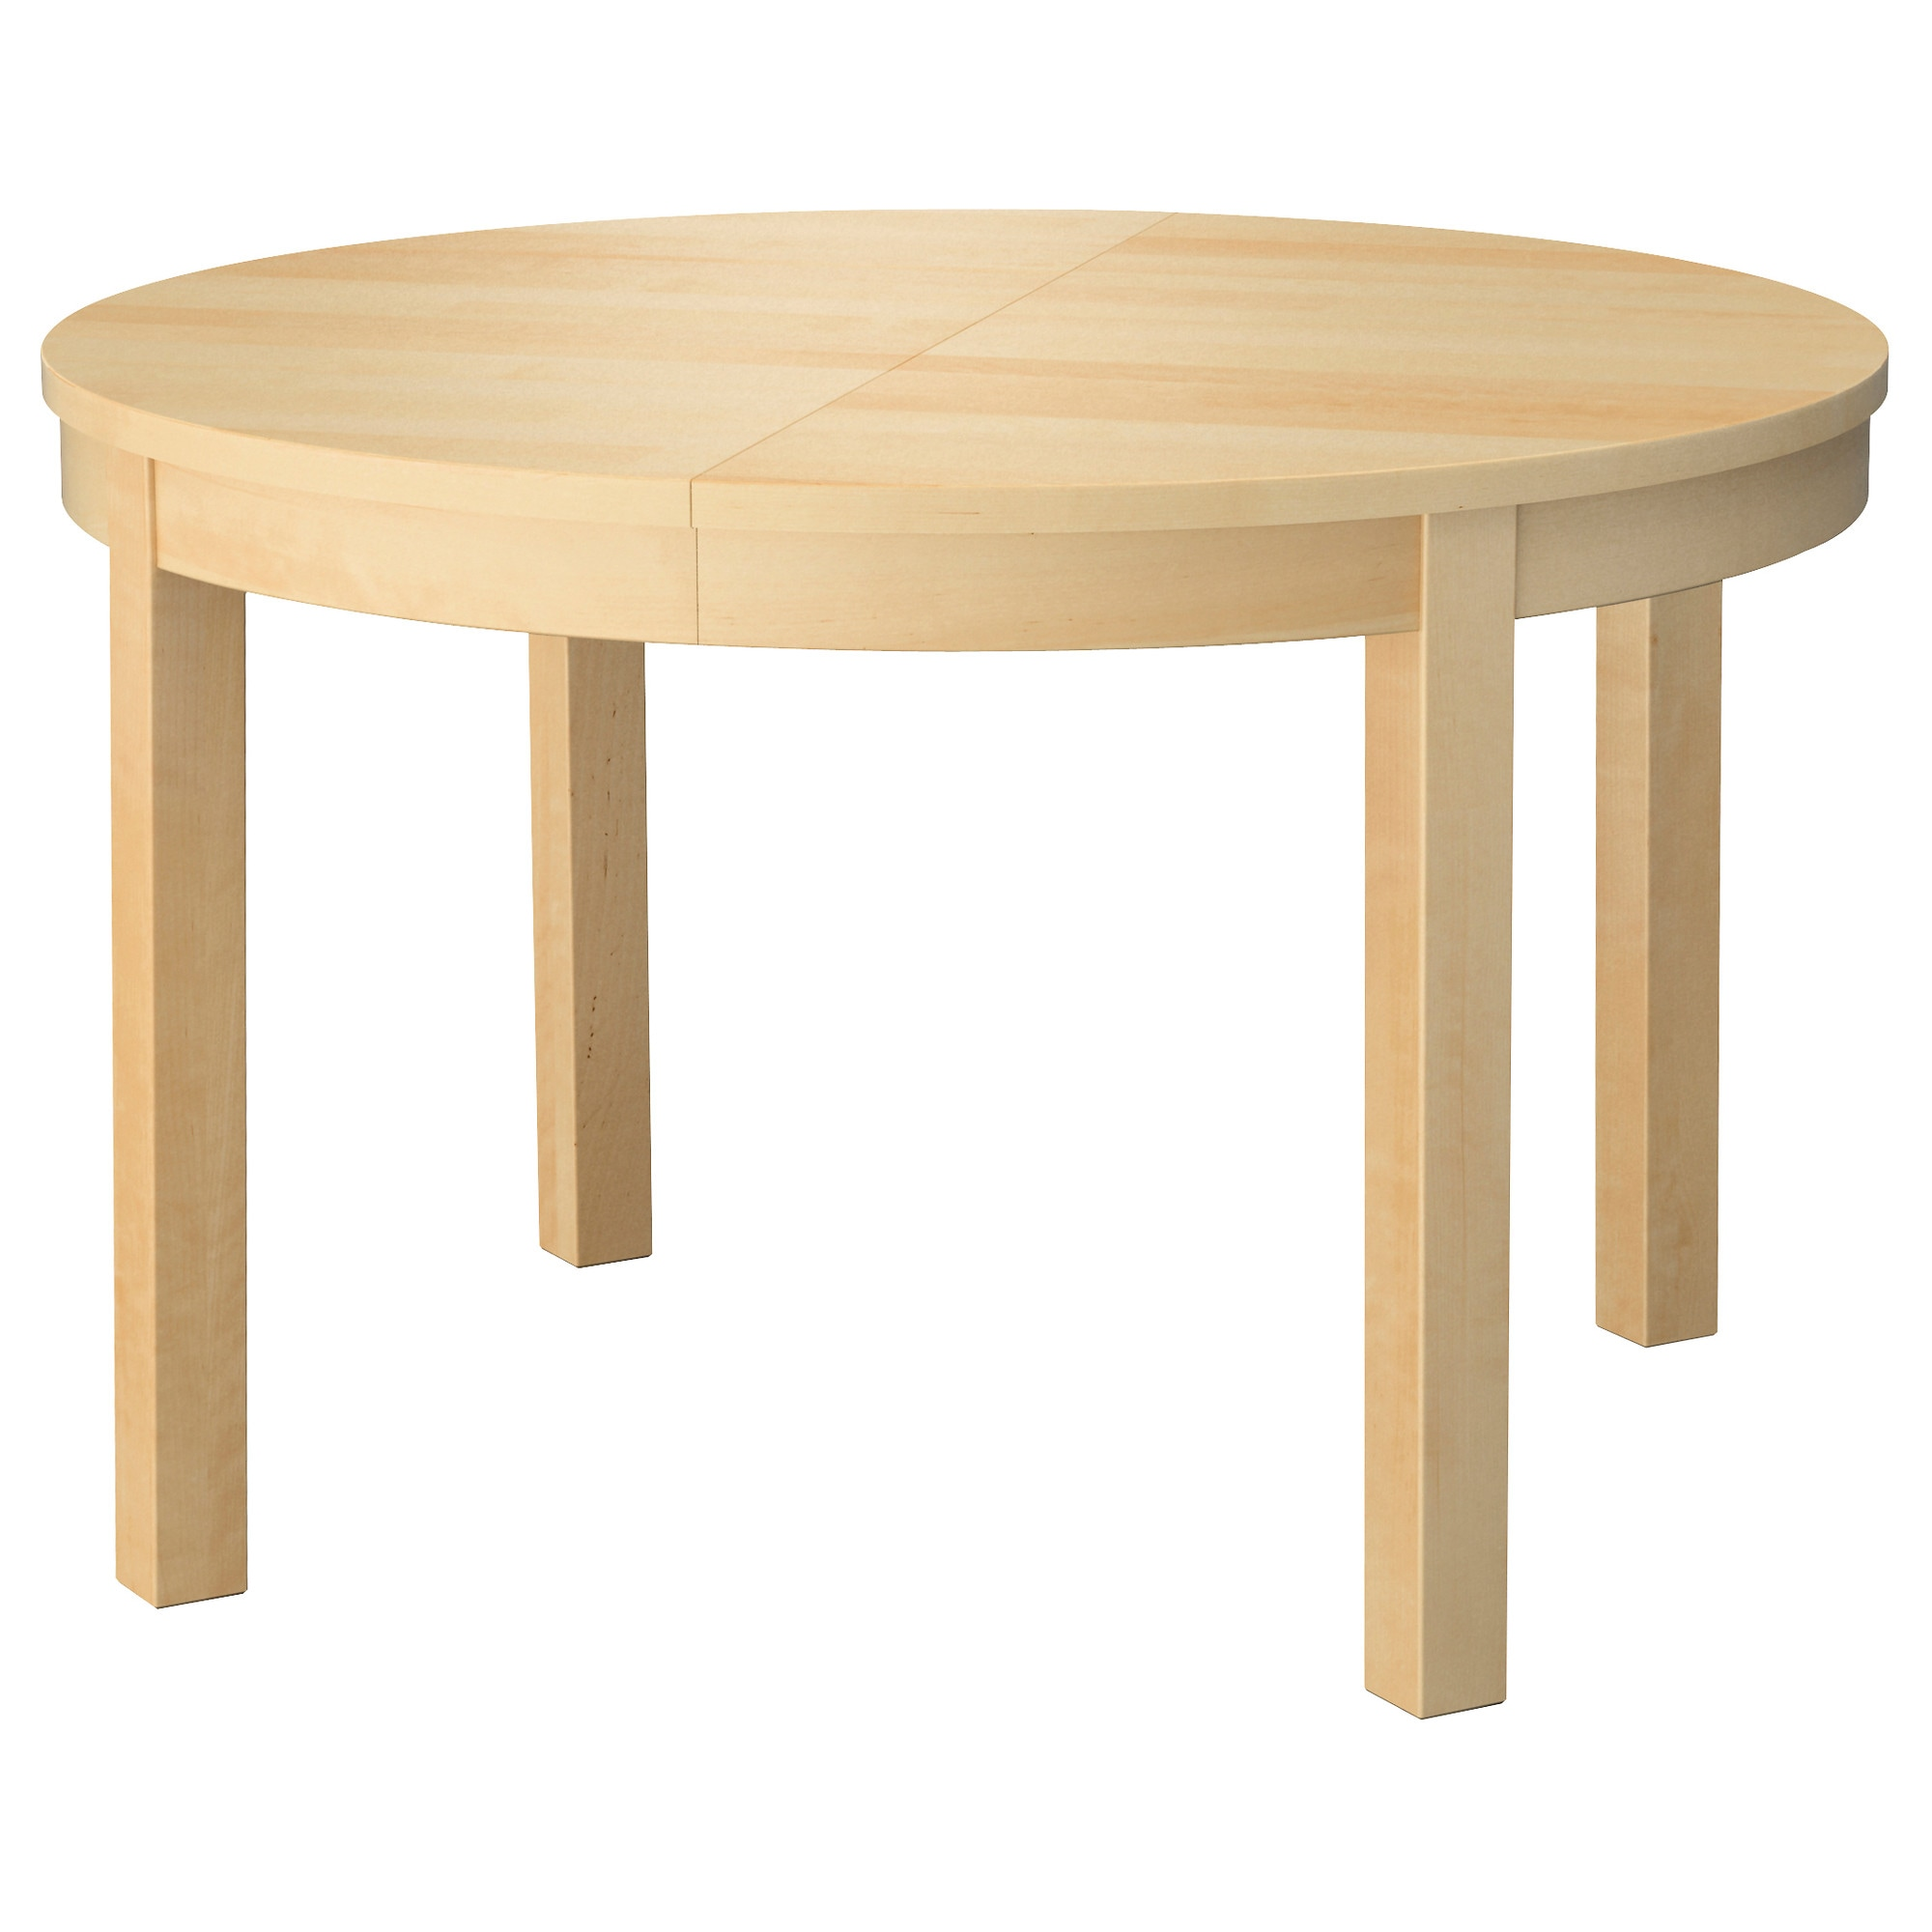 Table ronde ikea for Table ronde noire avec rallonge